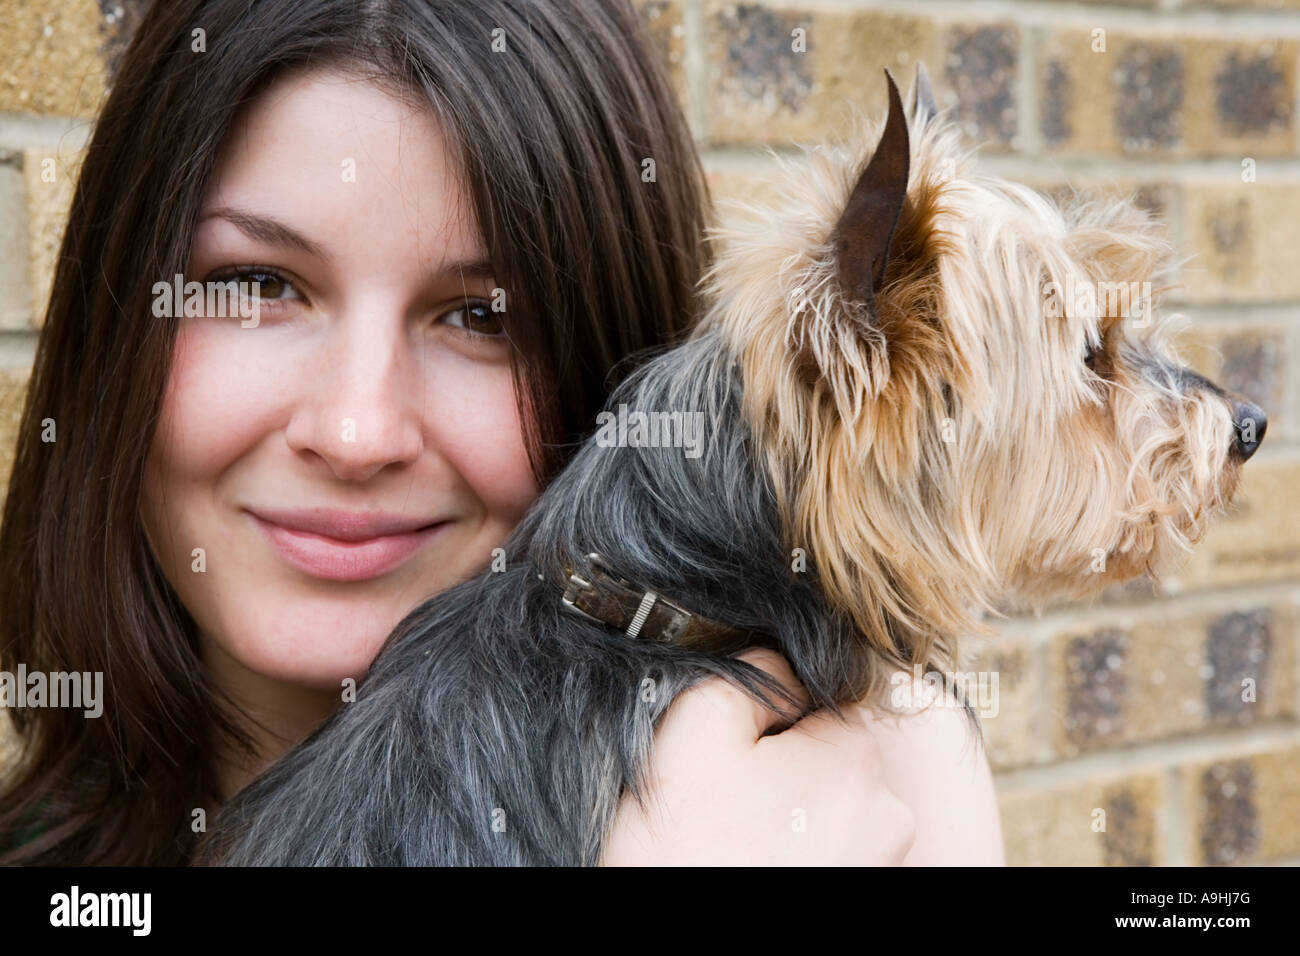 Girl holding her small dog - Stock Image